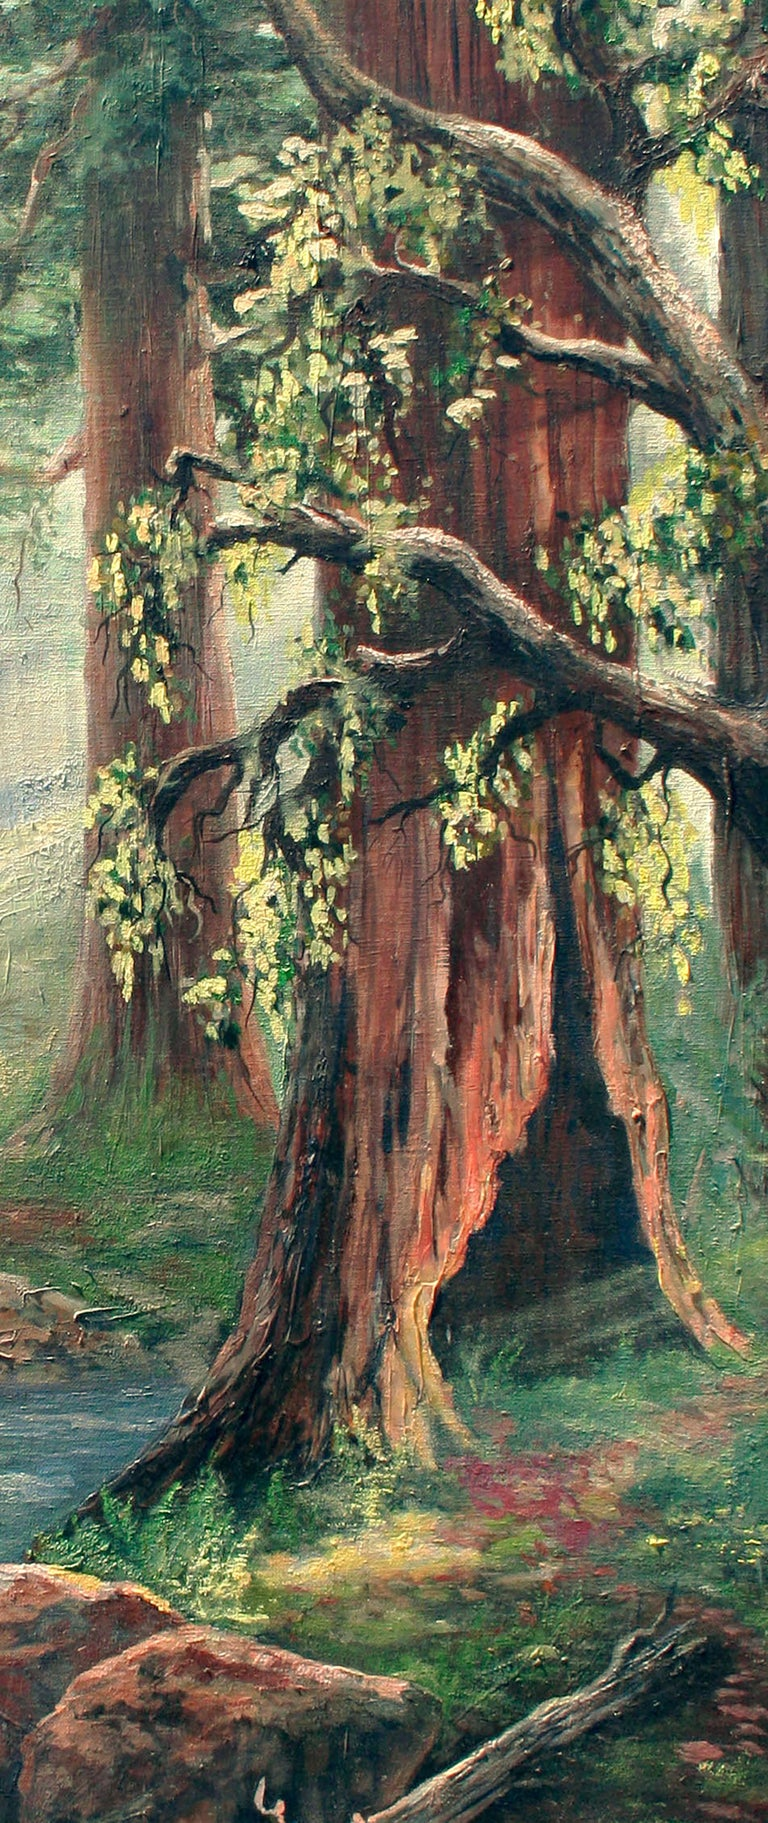 Enchanted Redwood Forest Landscape  - American Impressionist Painting by Unknown